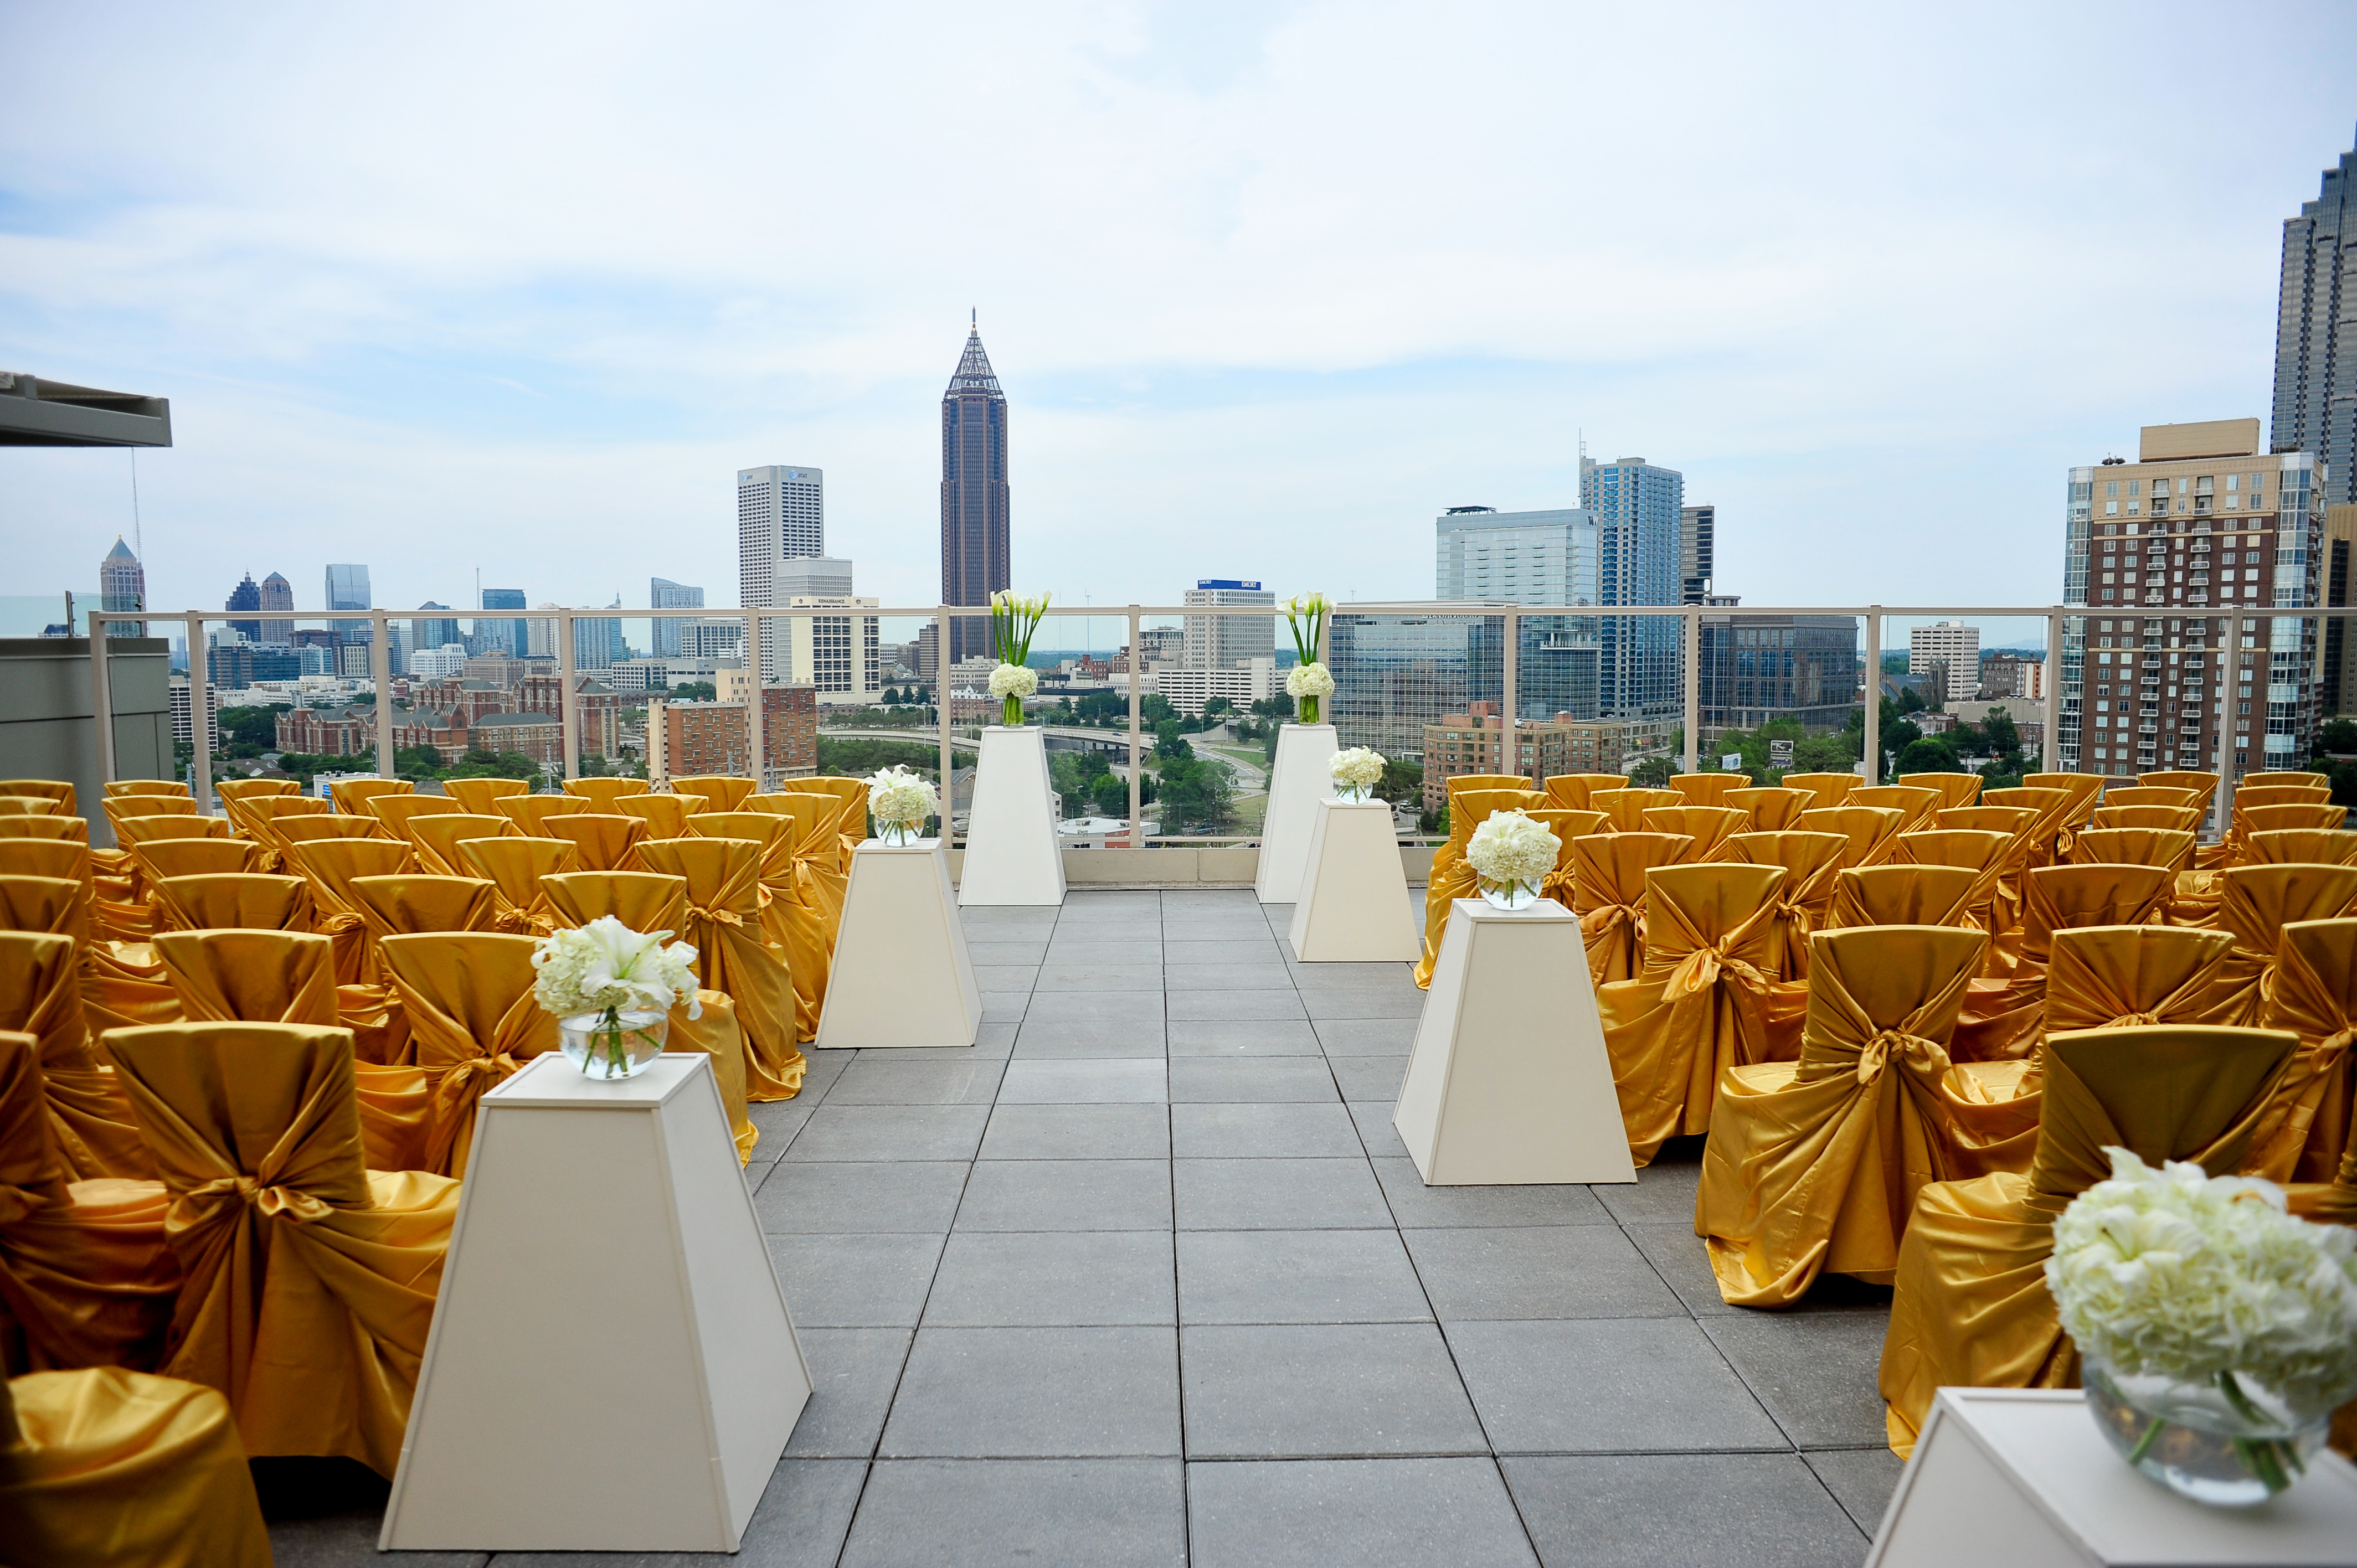 Ventanas rooftop venue wedding venue in atlanta ga junglespirit Image collections